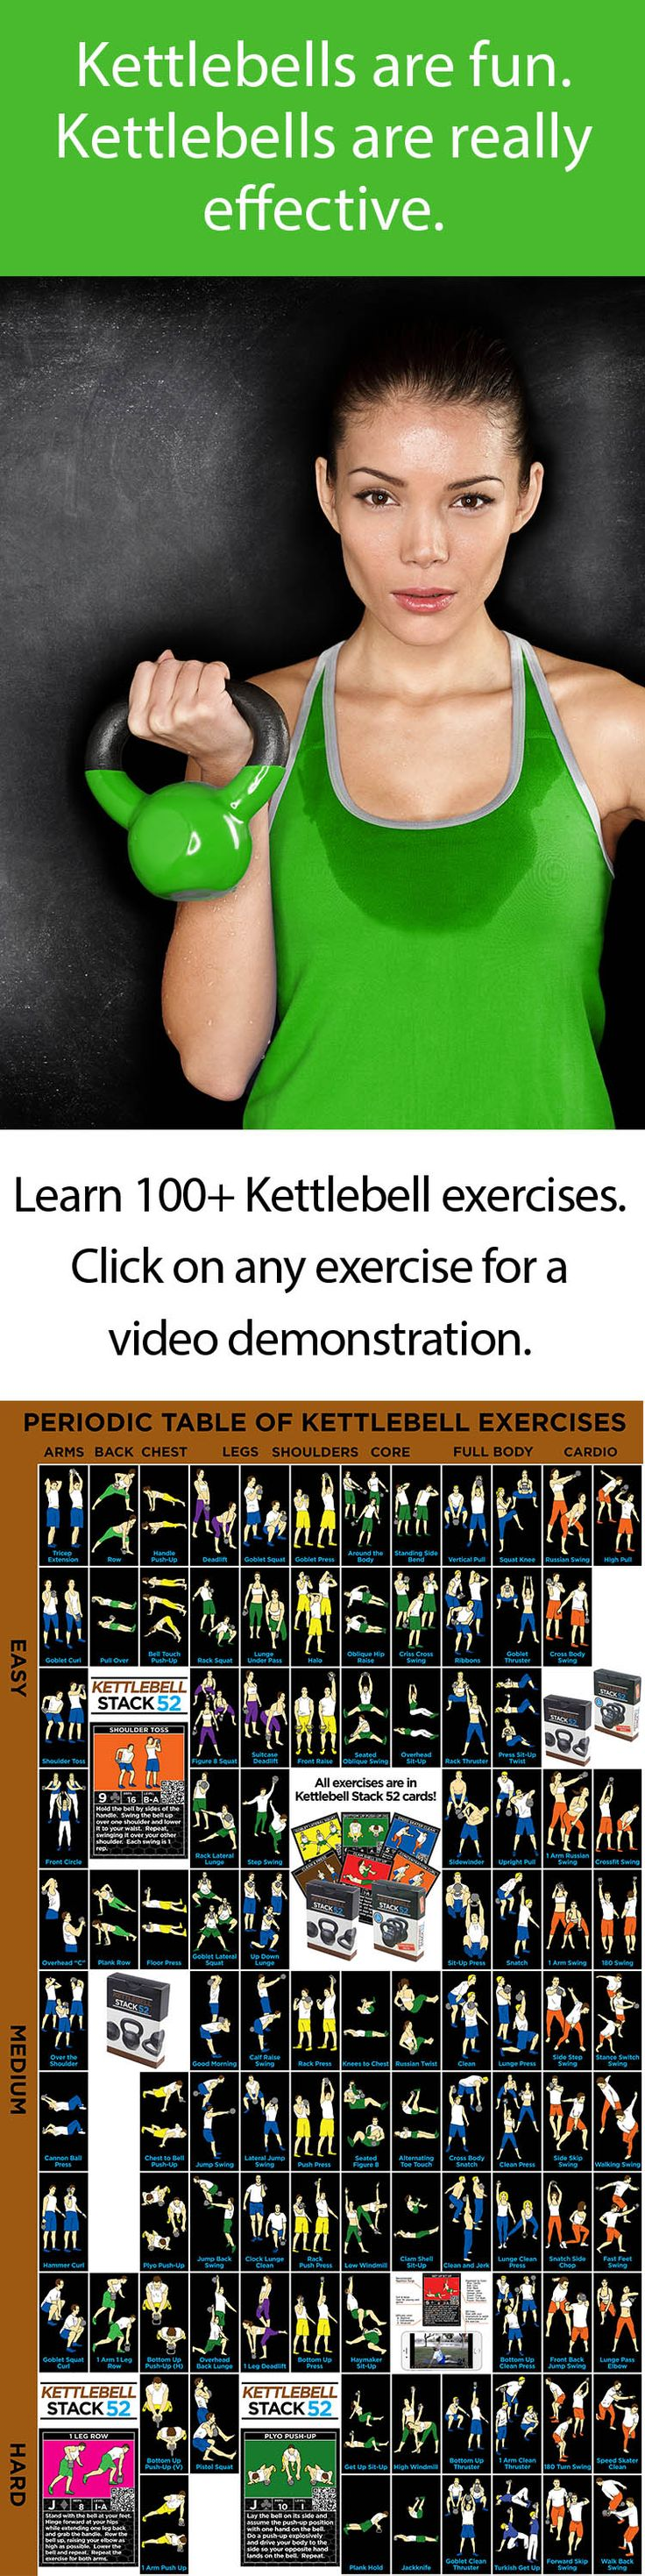 This free Periodic Table of Kettlebell Exercises has over 100 kettlebell exercises arranged by muscle group and difficulty.  Click on any exercise for a video demonstration!  http://strength.stack52.com/periodic-table-of-kettlebell-exercises/